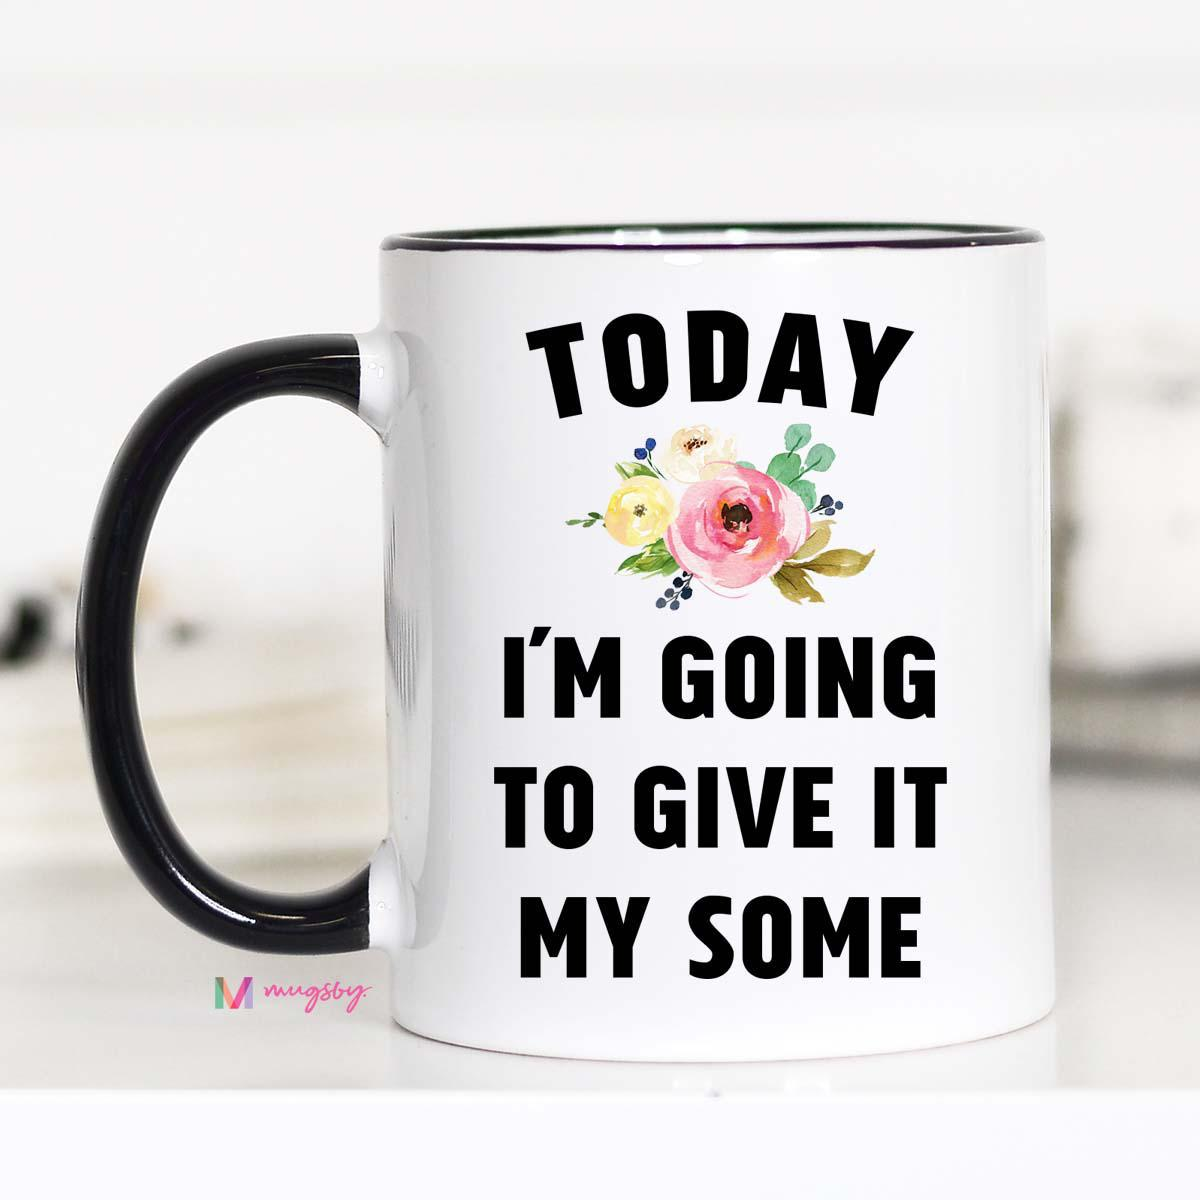 Today I'm Going to Give It my Some Mug